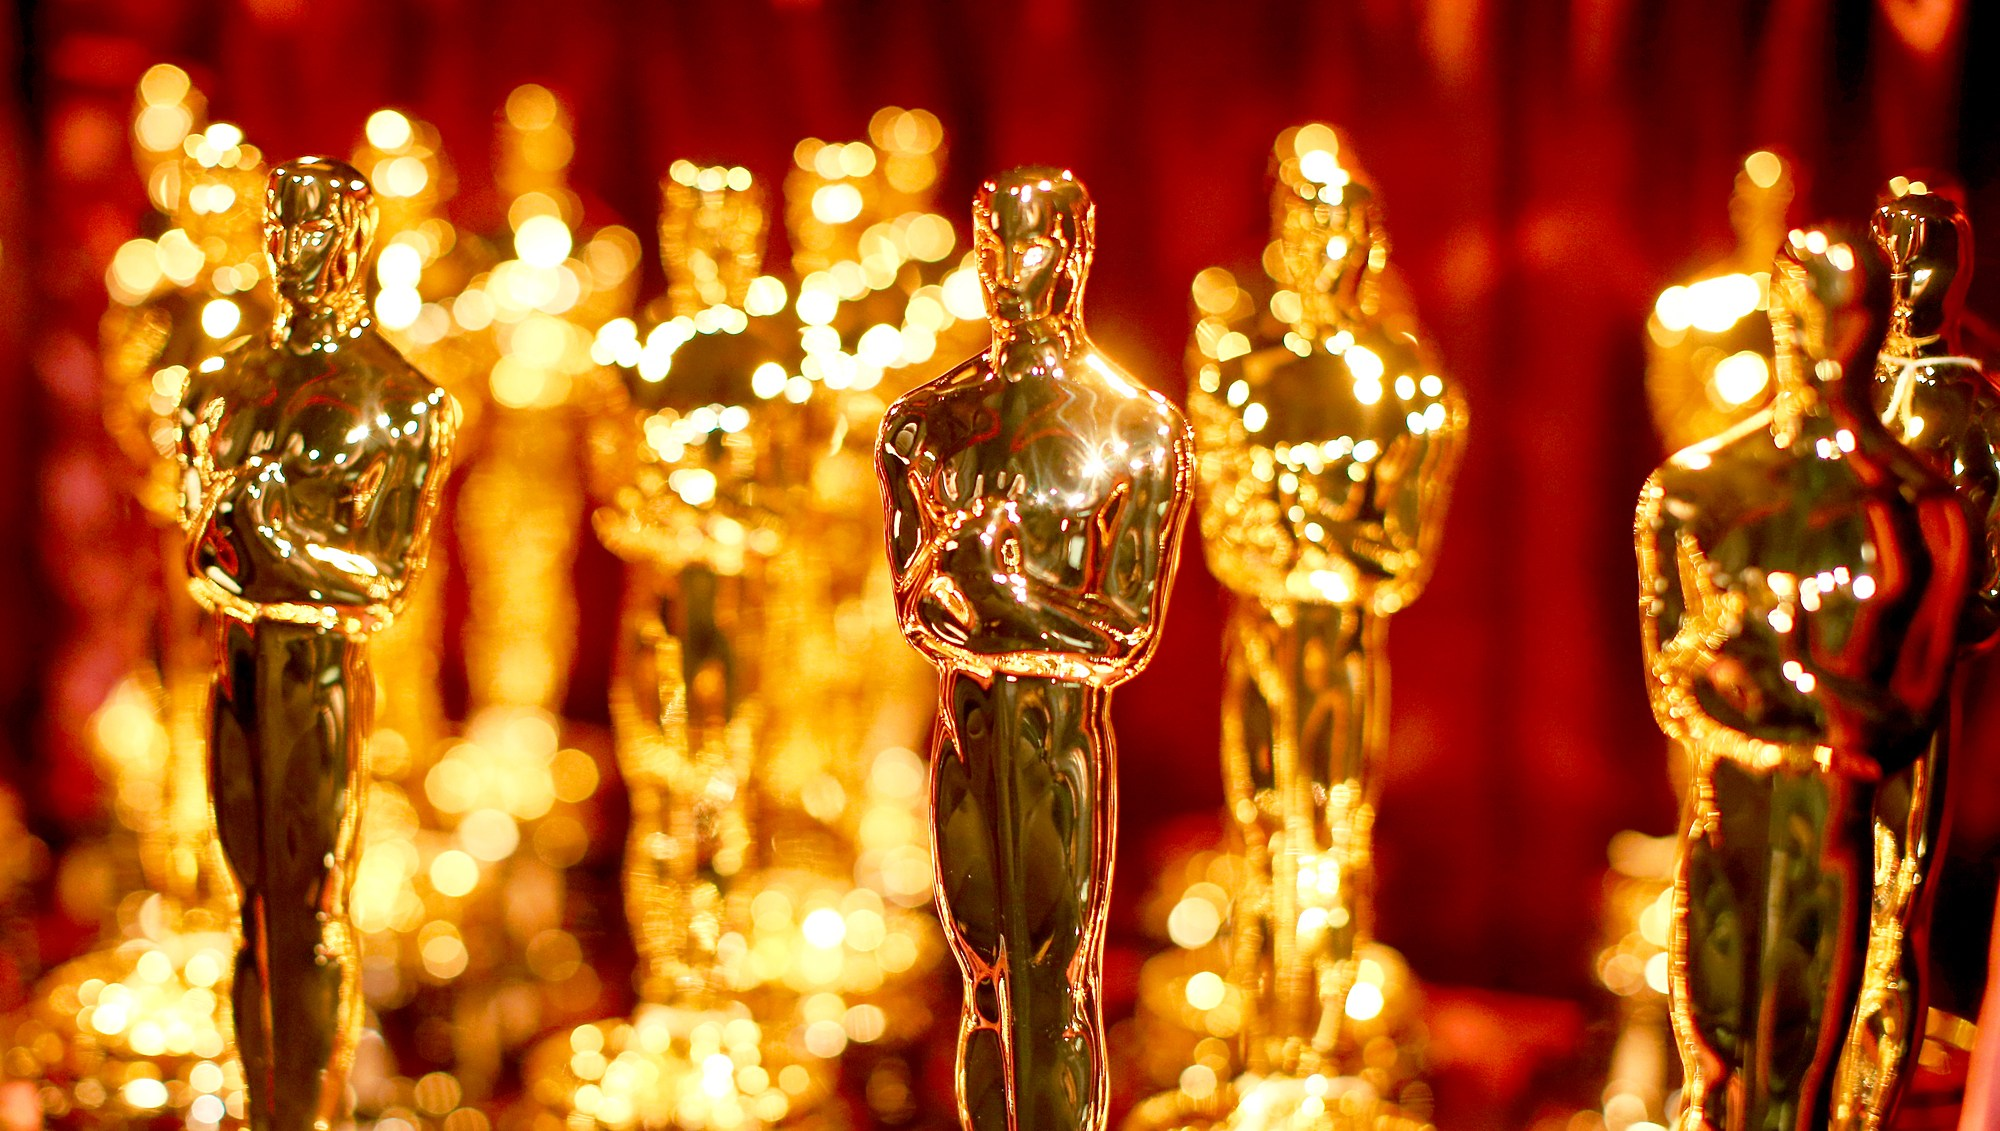 Oscar statuettes backstage during the 87th Annual Academy Awards at Dolby Theatre in Hollywood, California.